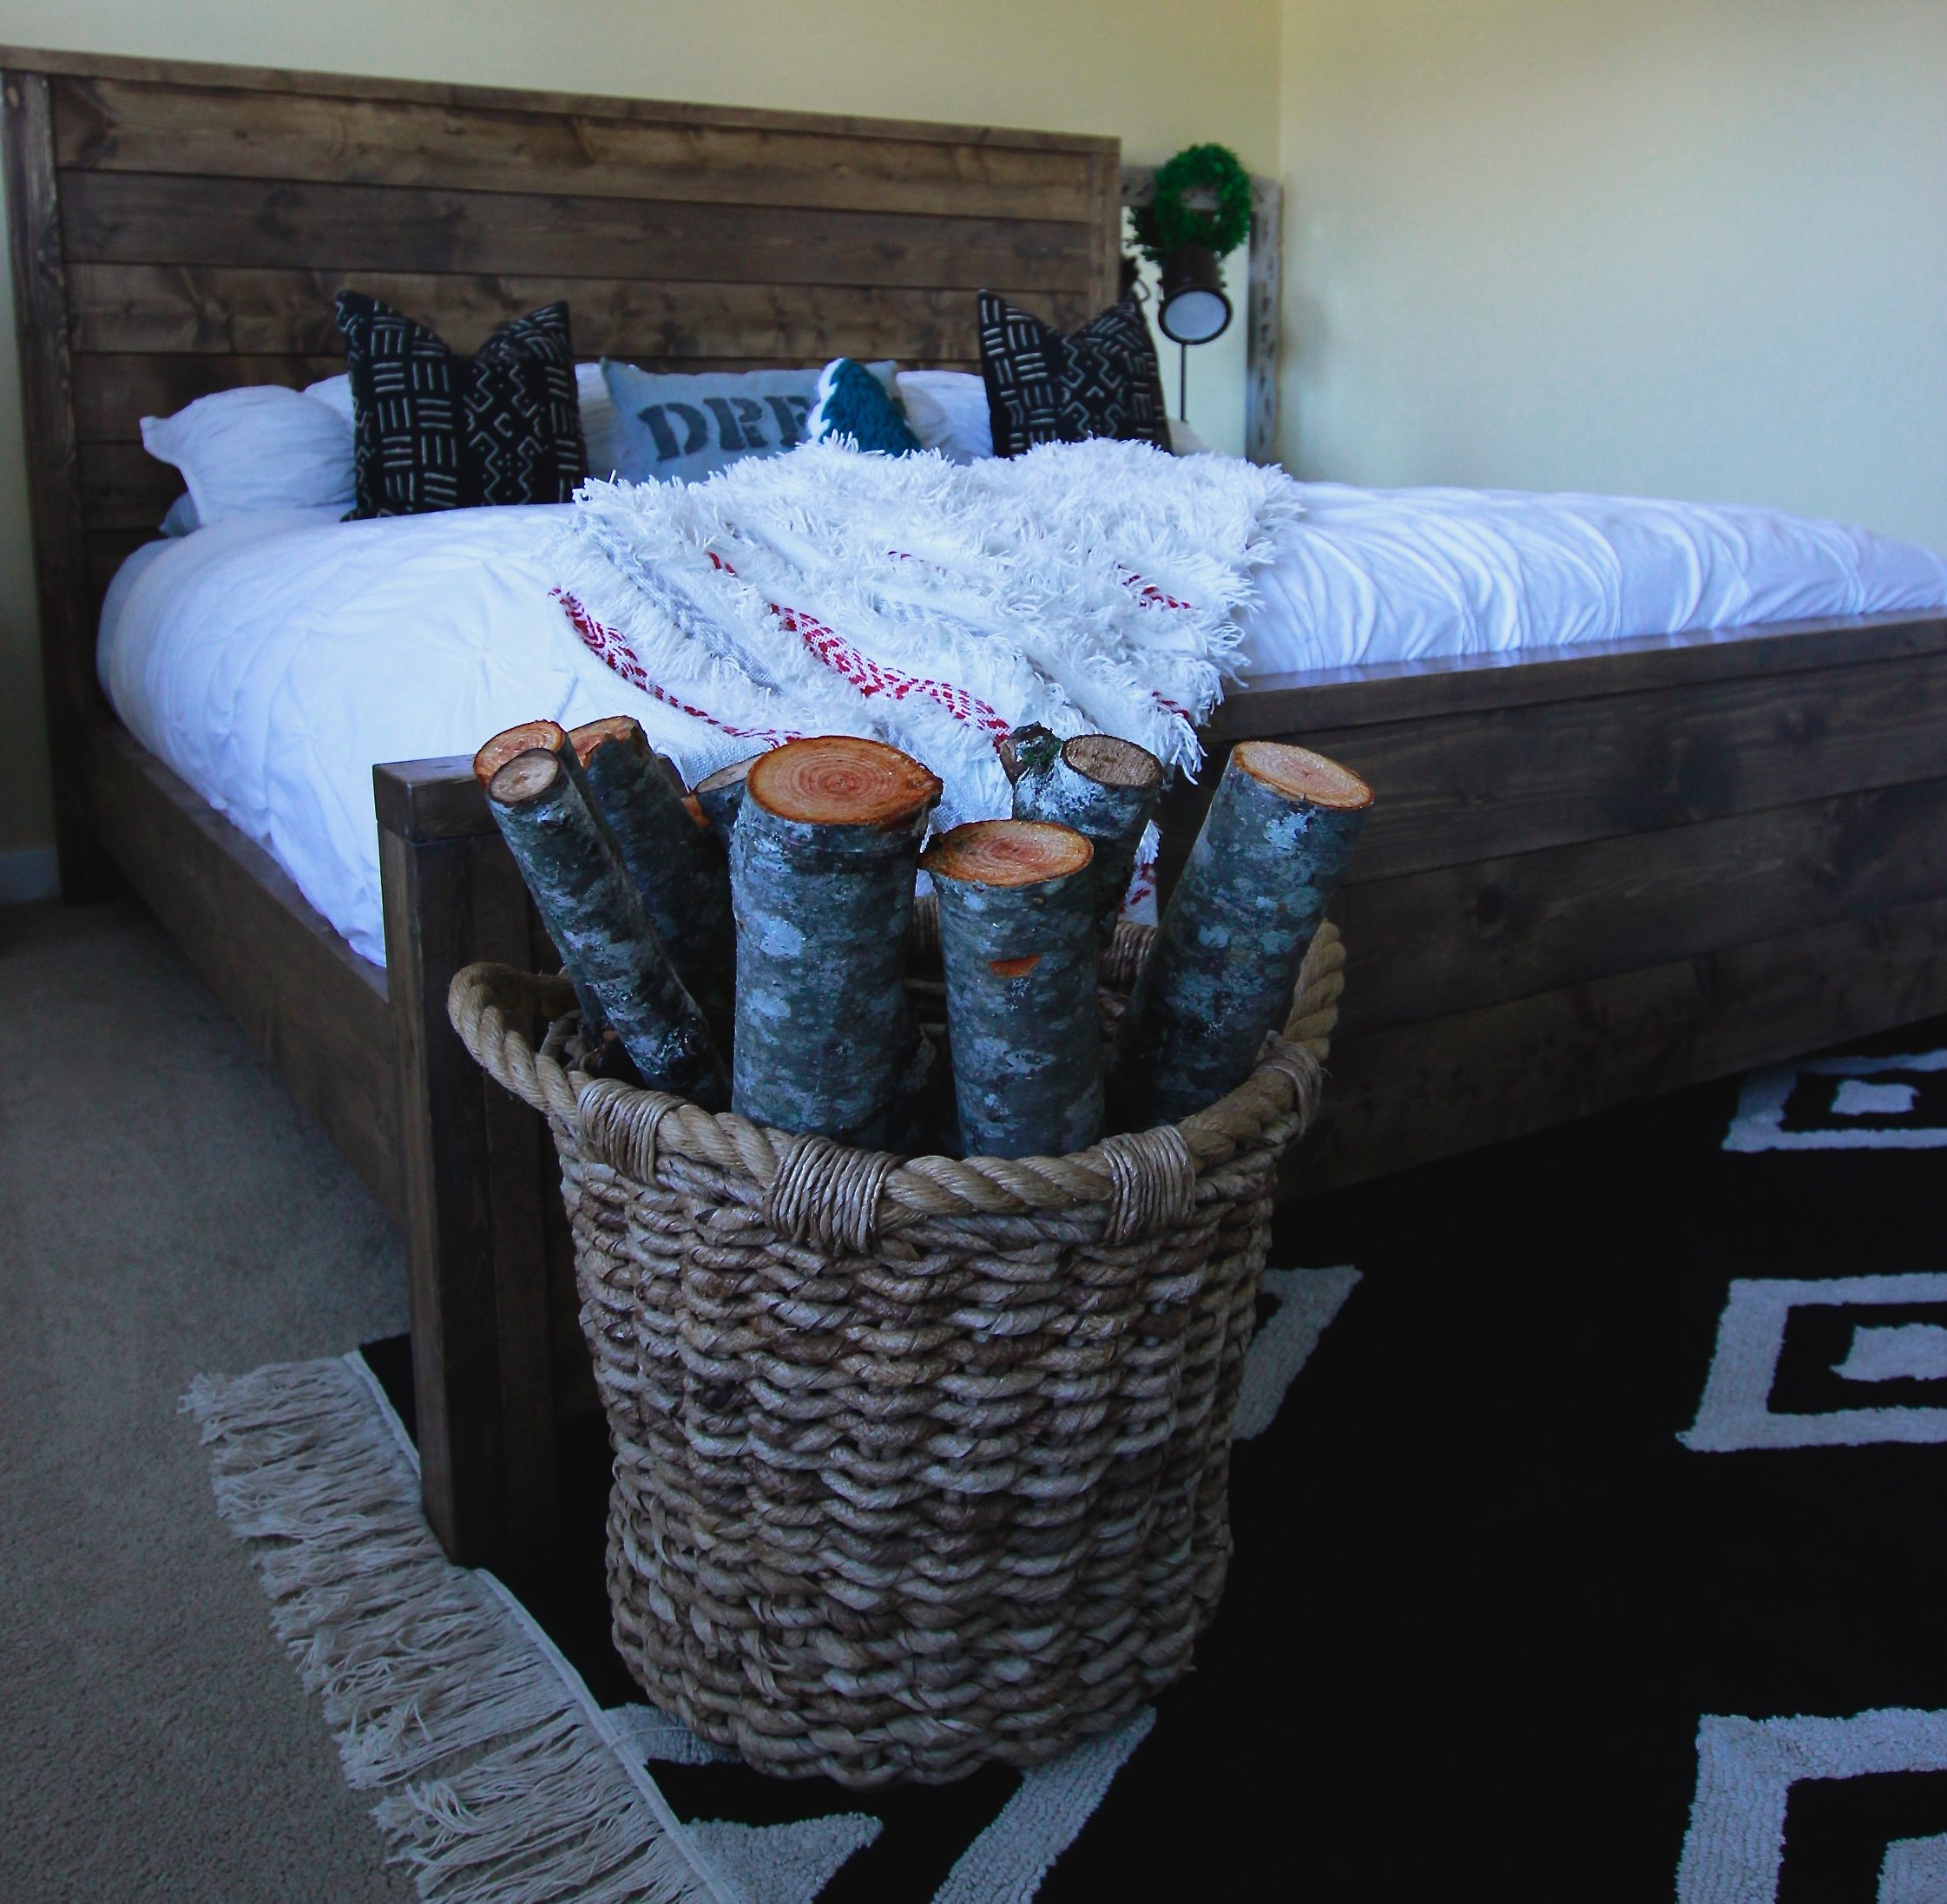 Our DIY Modern Rustic Bed, Available To Purchase Through The Rugged Home, www.theruggedhome.com, Rustic Modern Bed, Farmhouse Modern Bed